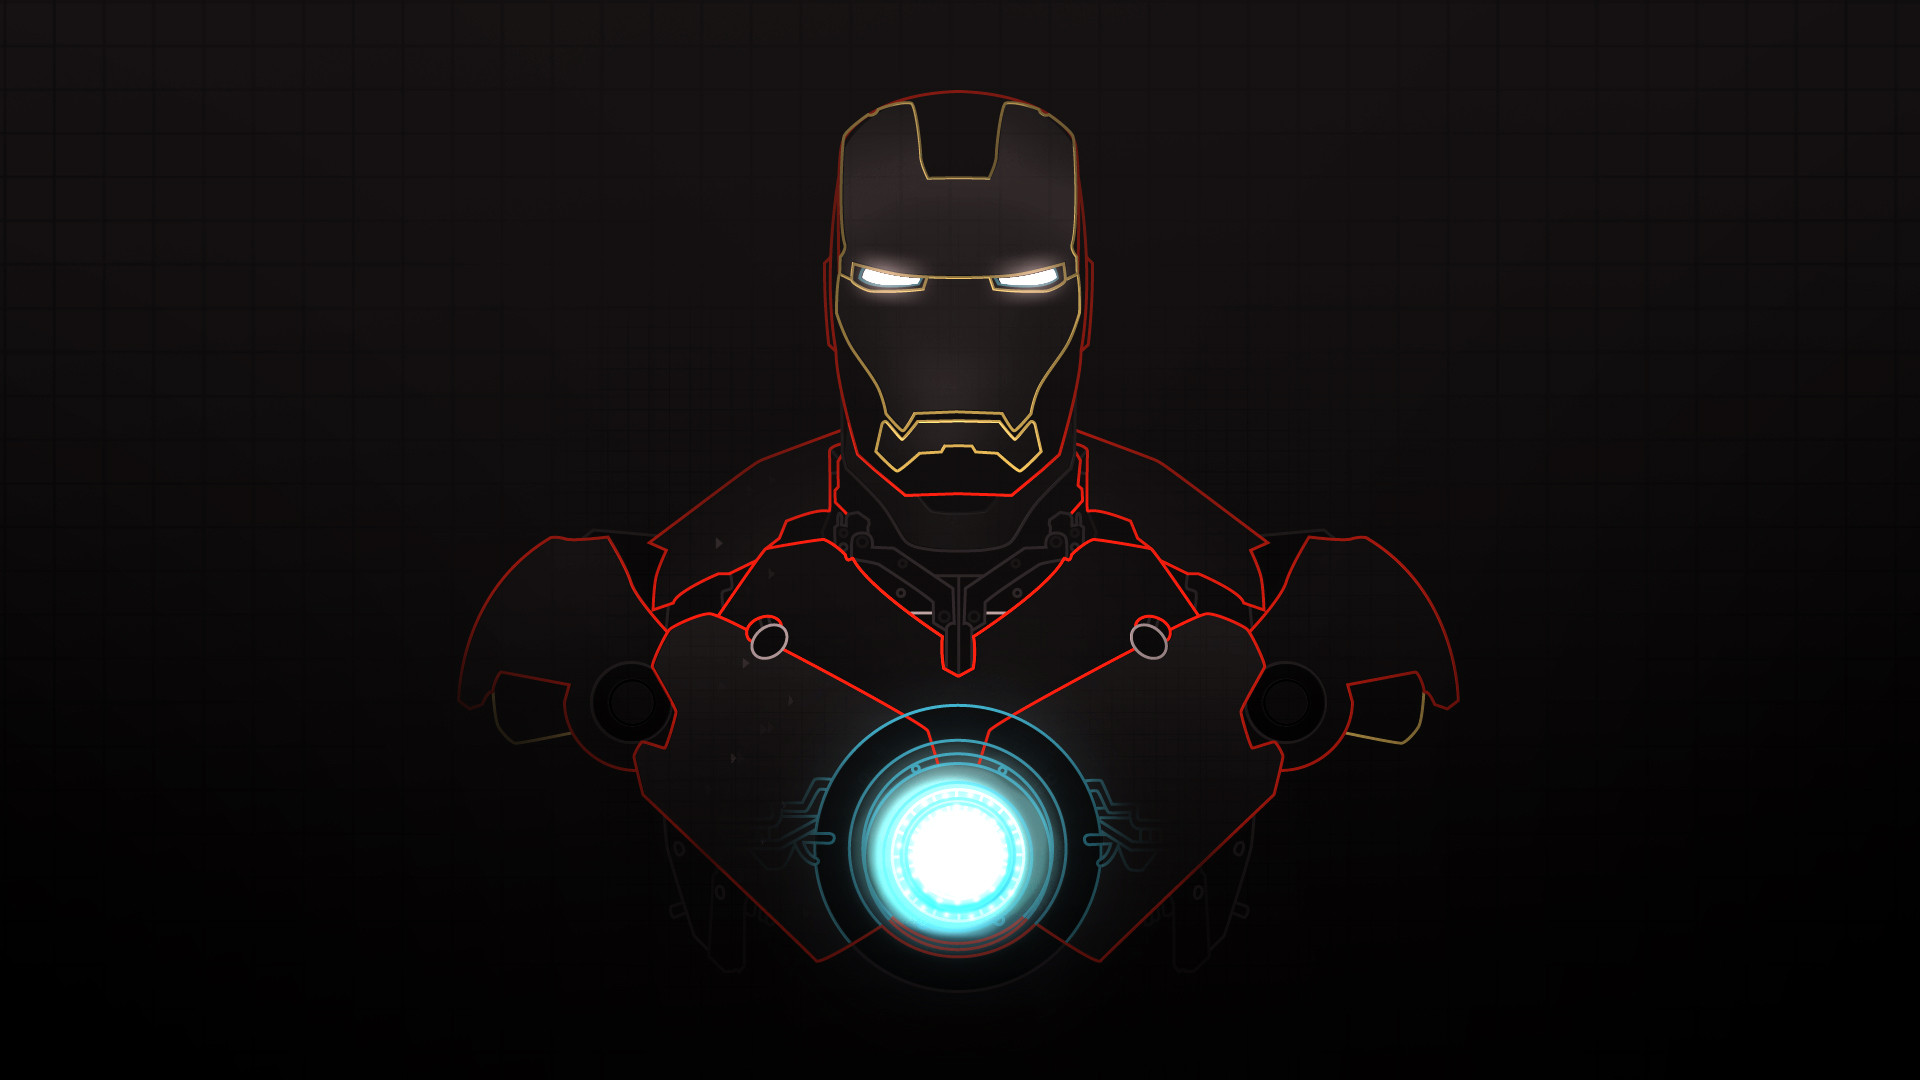 Download Bright Images 23 Iron Man 100 Quality HD Wallpapers 1920x1080